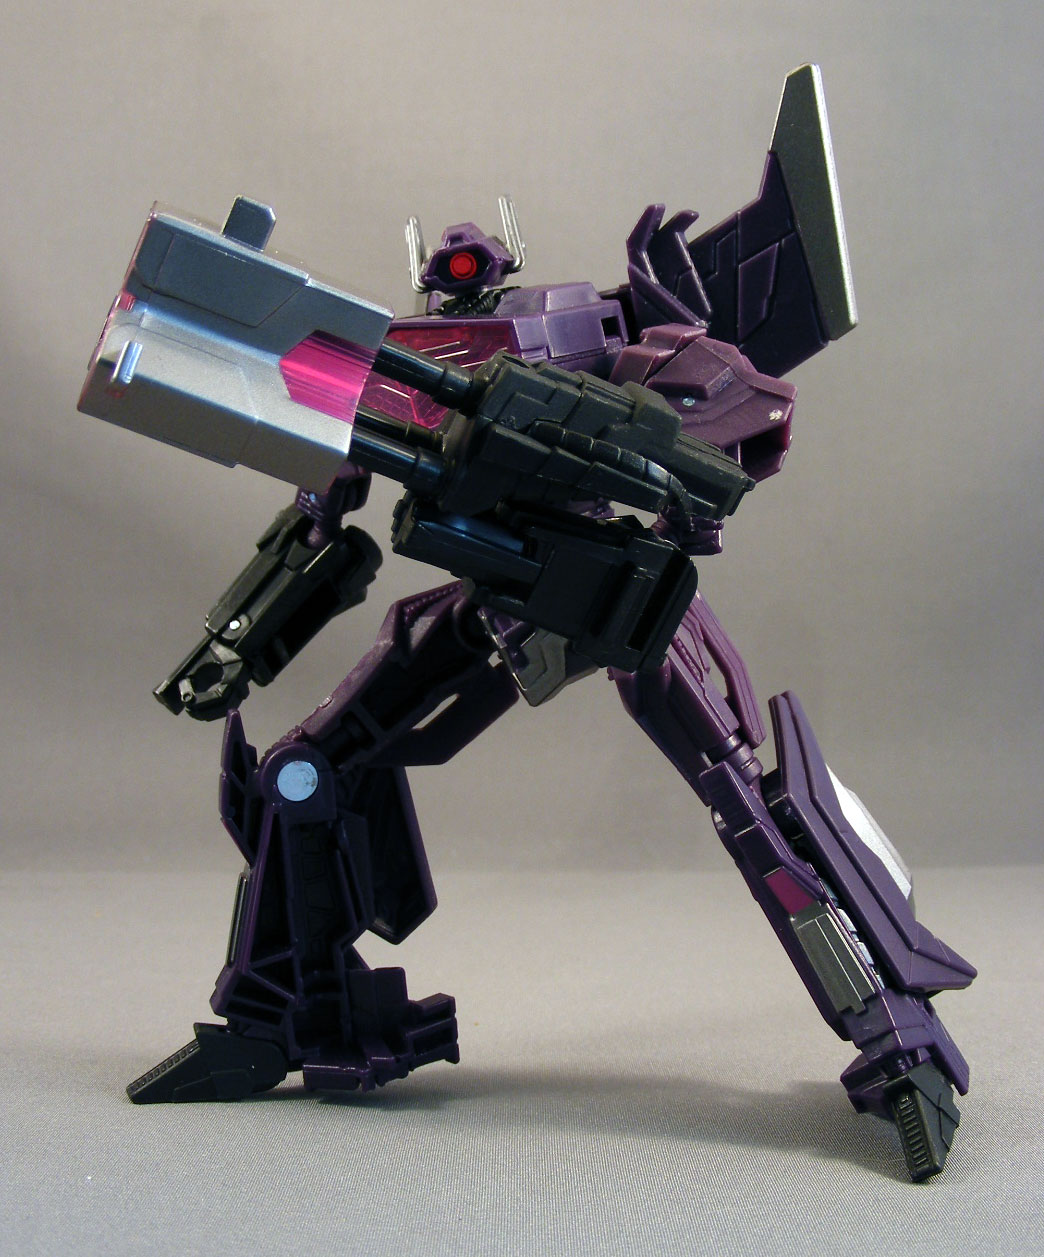 Review > Fall of Cybertron Shockwave (Transformers Generations, Hasbro)